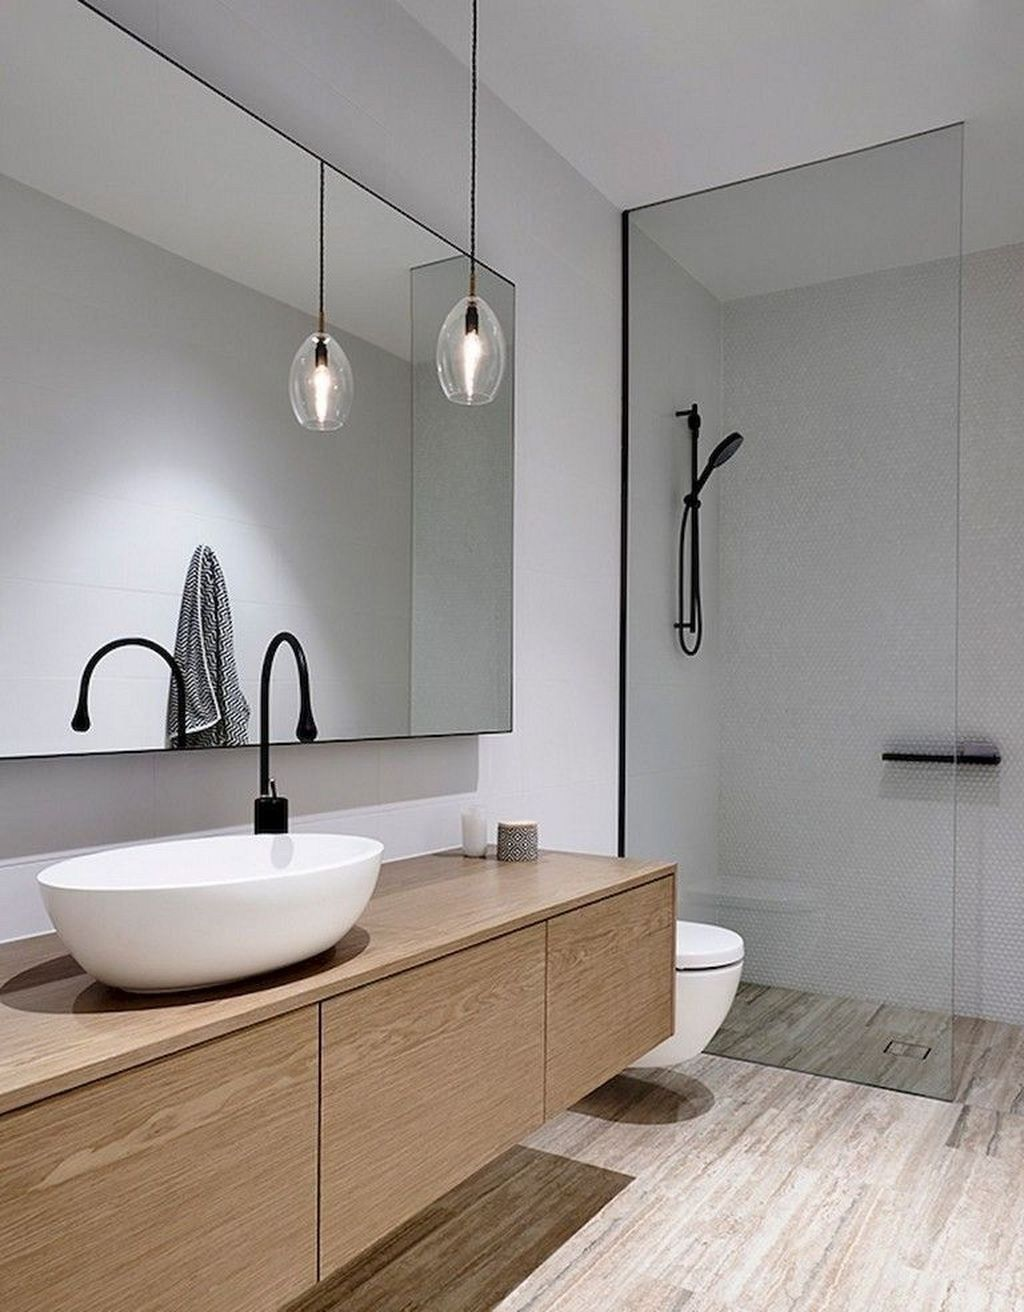 48 The Best Ideas To Creating Cozy Minimalist Bathroom Pimphomee Minimalist Bathroom Design Bathroom Design Inspiration Minimalist Bathroom Minimalist bathroom image inspiration